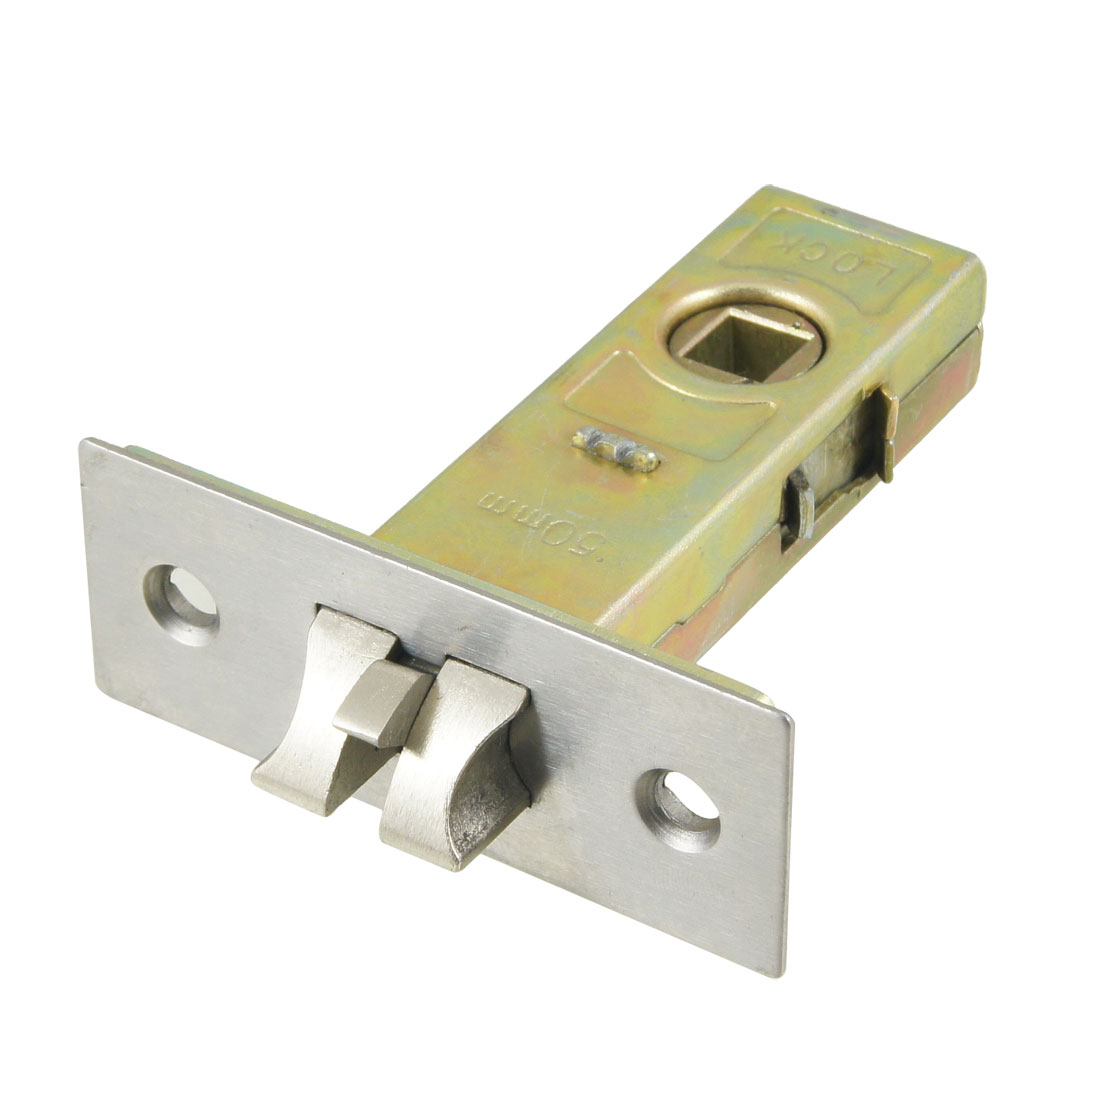 Bathroom Toilet 50mm Overlock Distance Metal Spring Loaded Door Lock Bolt